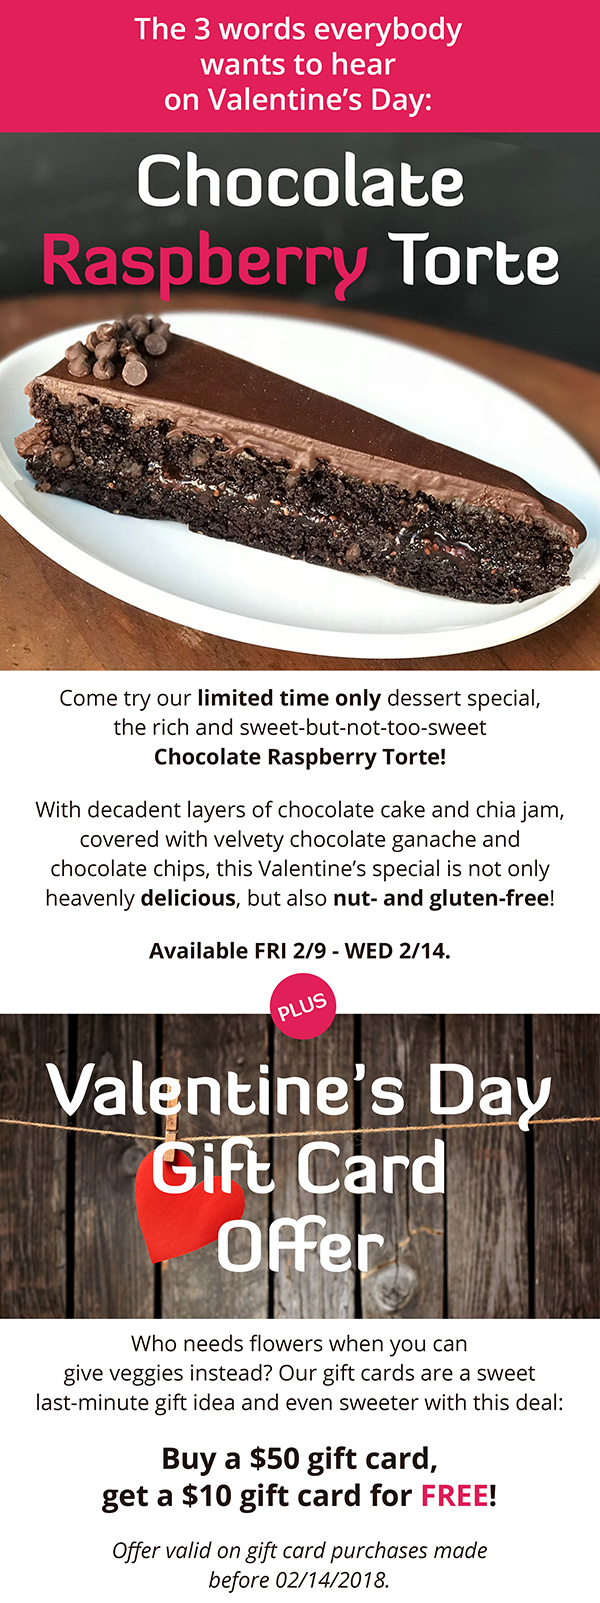 Limited Time Valentine's Day Dessert PLUS Gift Card Deal!